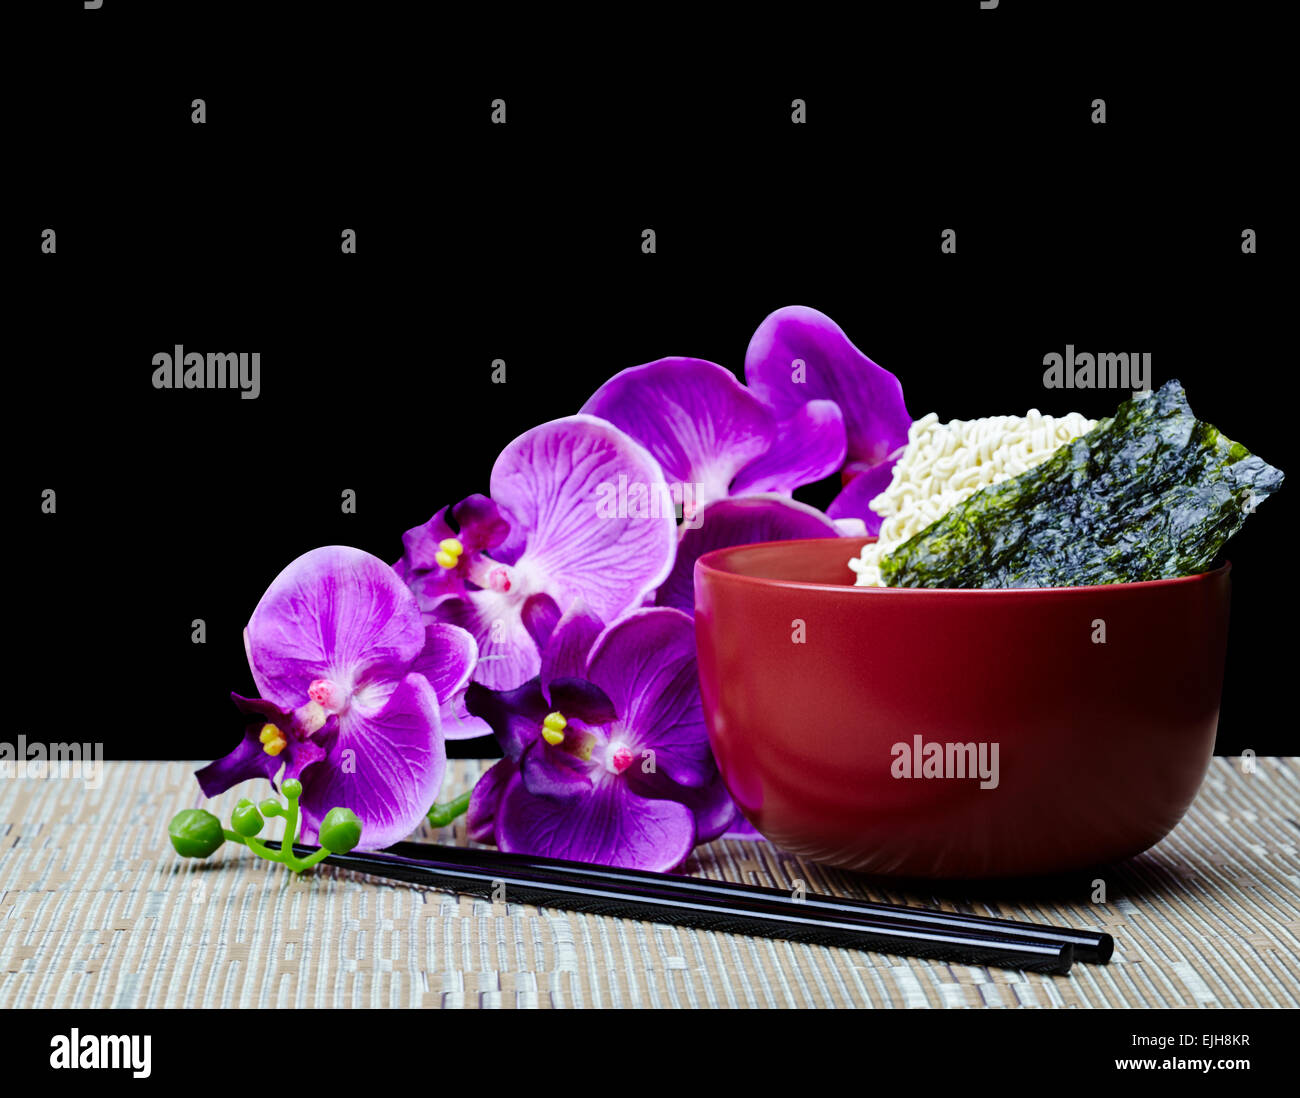 Oriental Saimin Noodles with Japanese Nori Seaweed and Chopsticks with Hawaiian Orchid Flower Isolated on Black - Stock Image